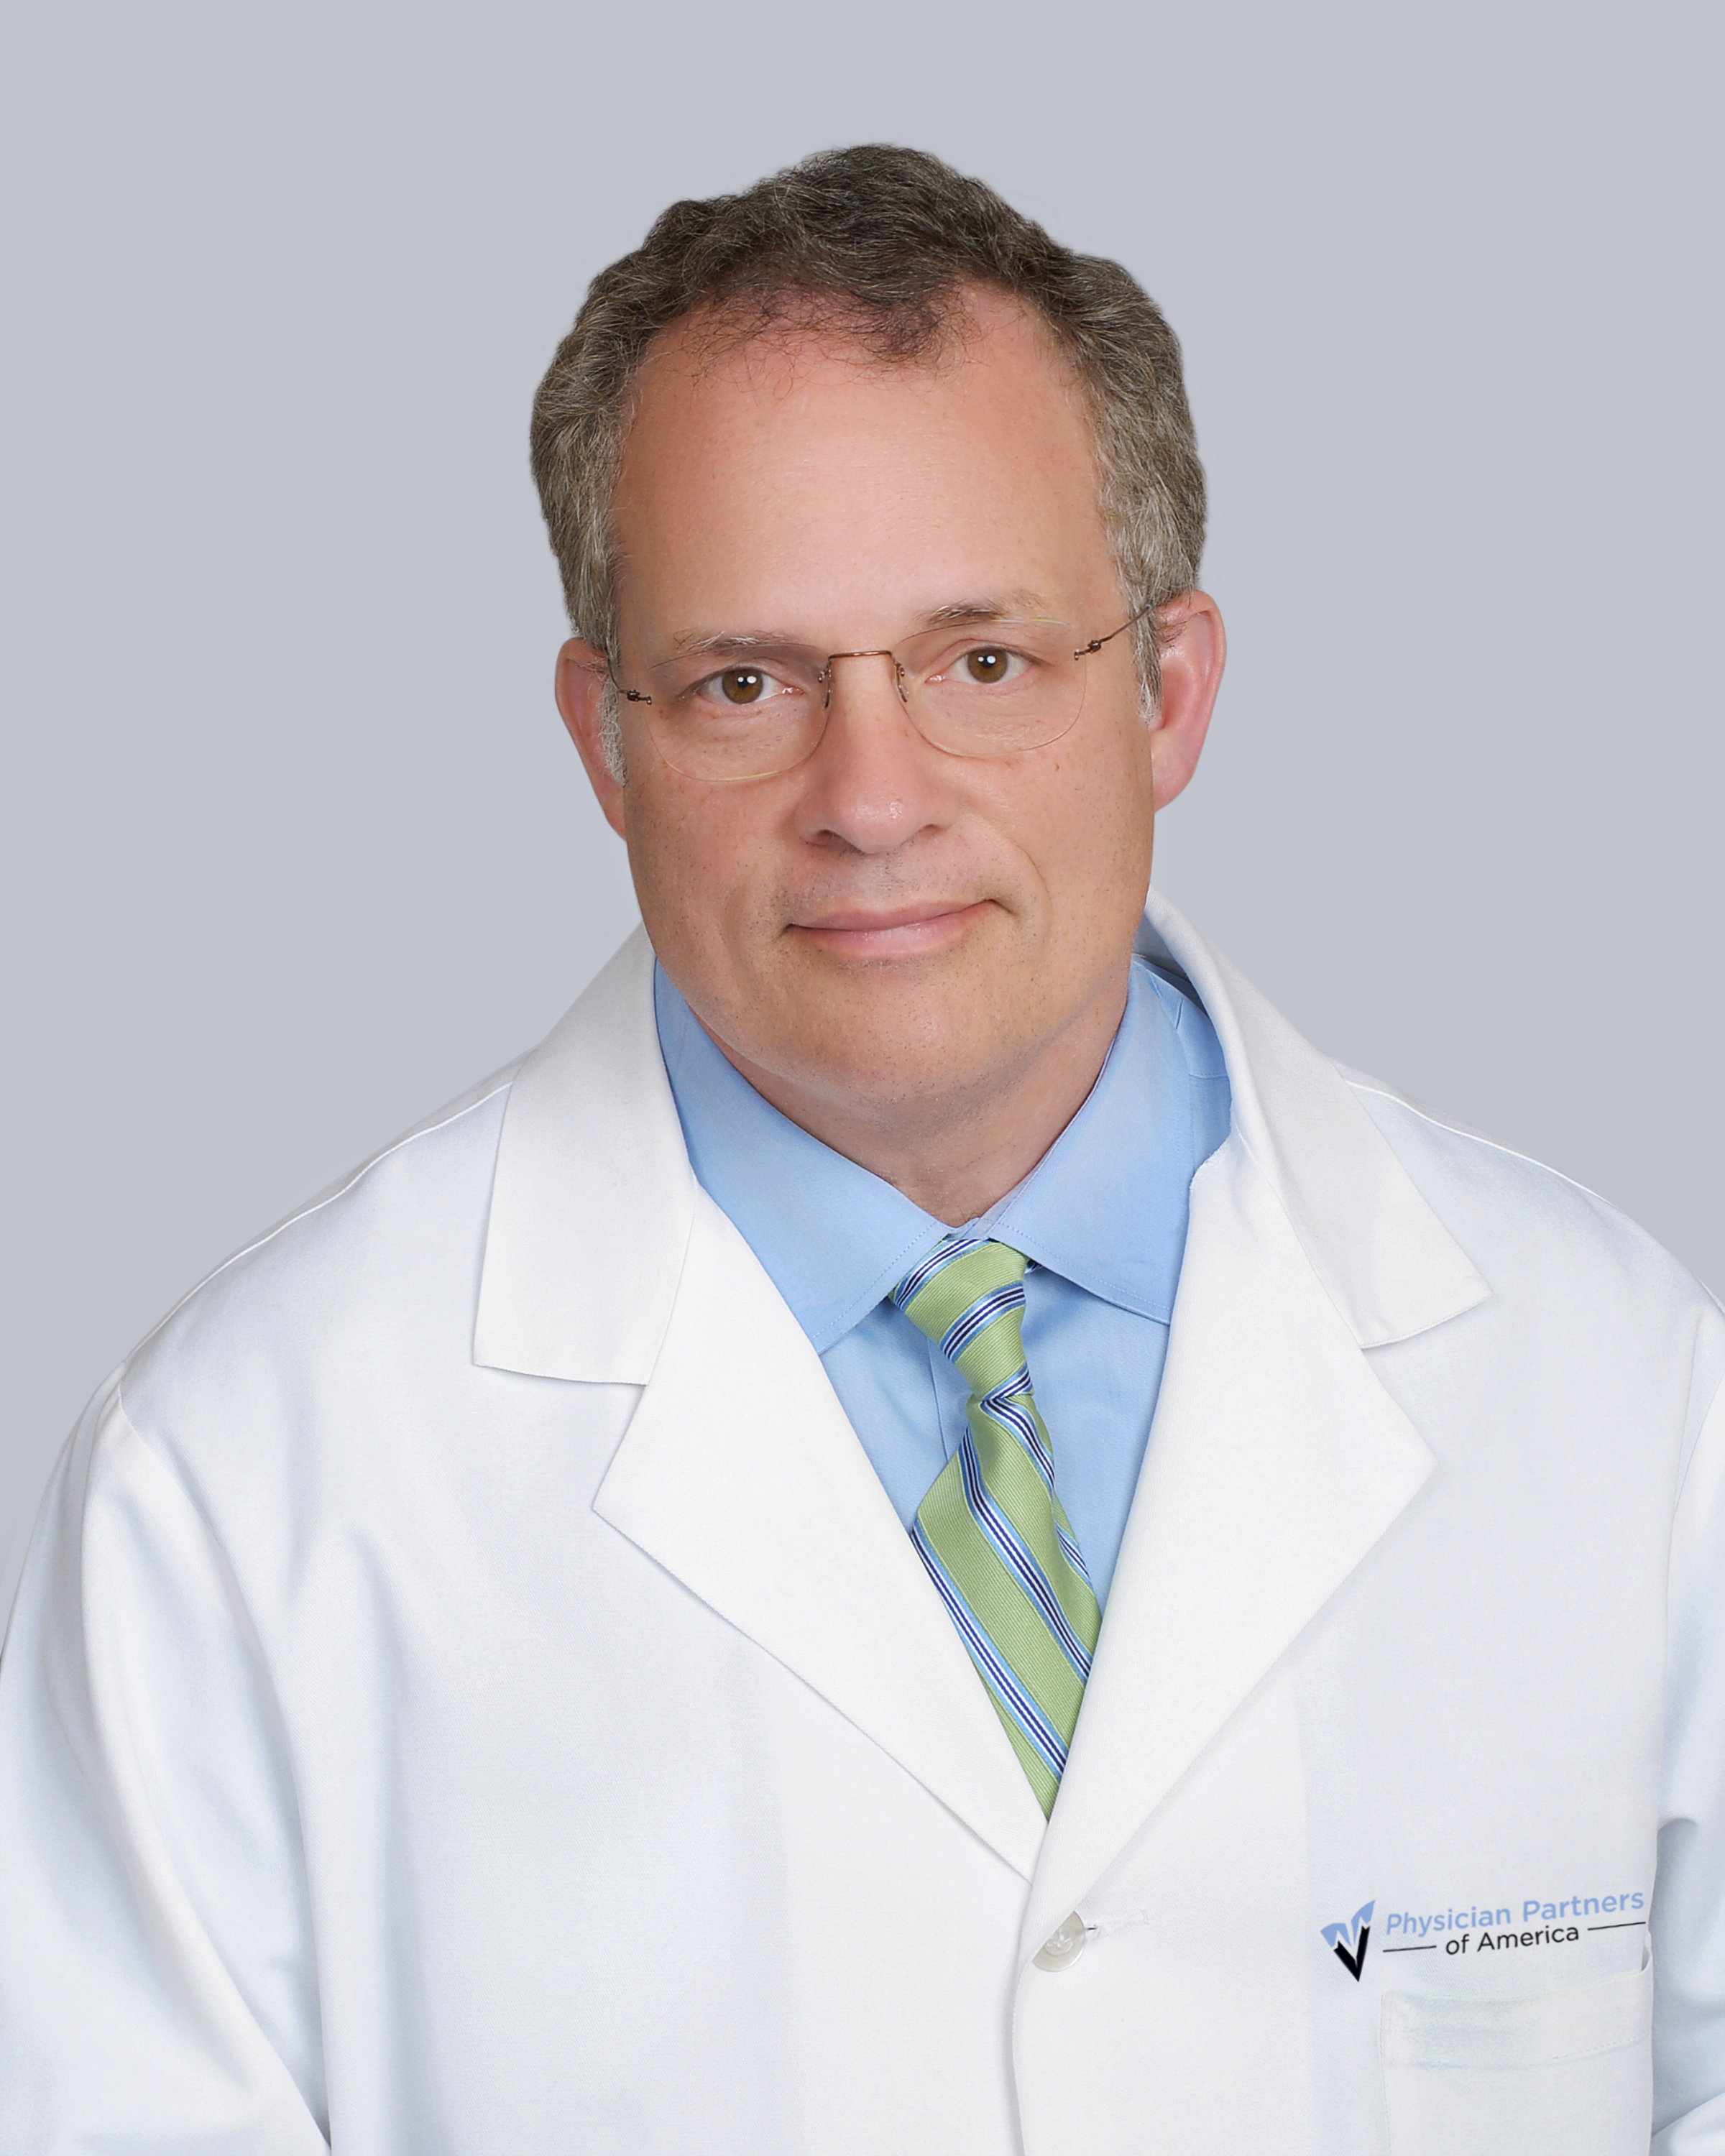 Dr. Anthony Guarino, PPOA Merritt Island